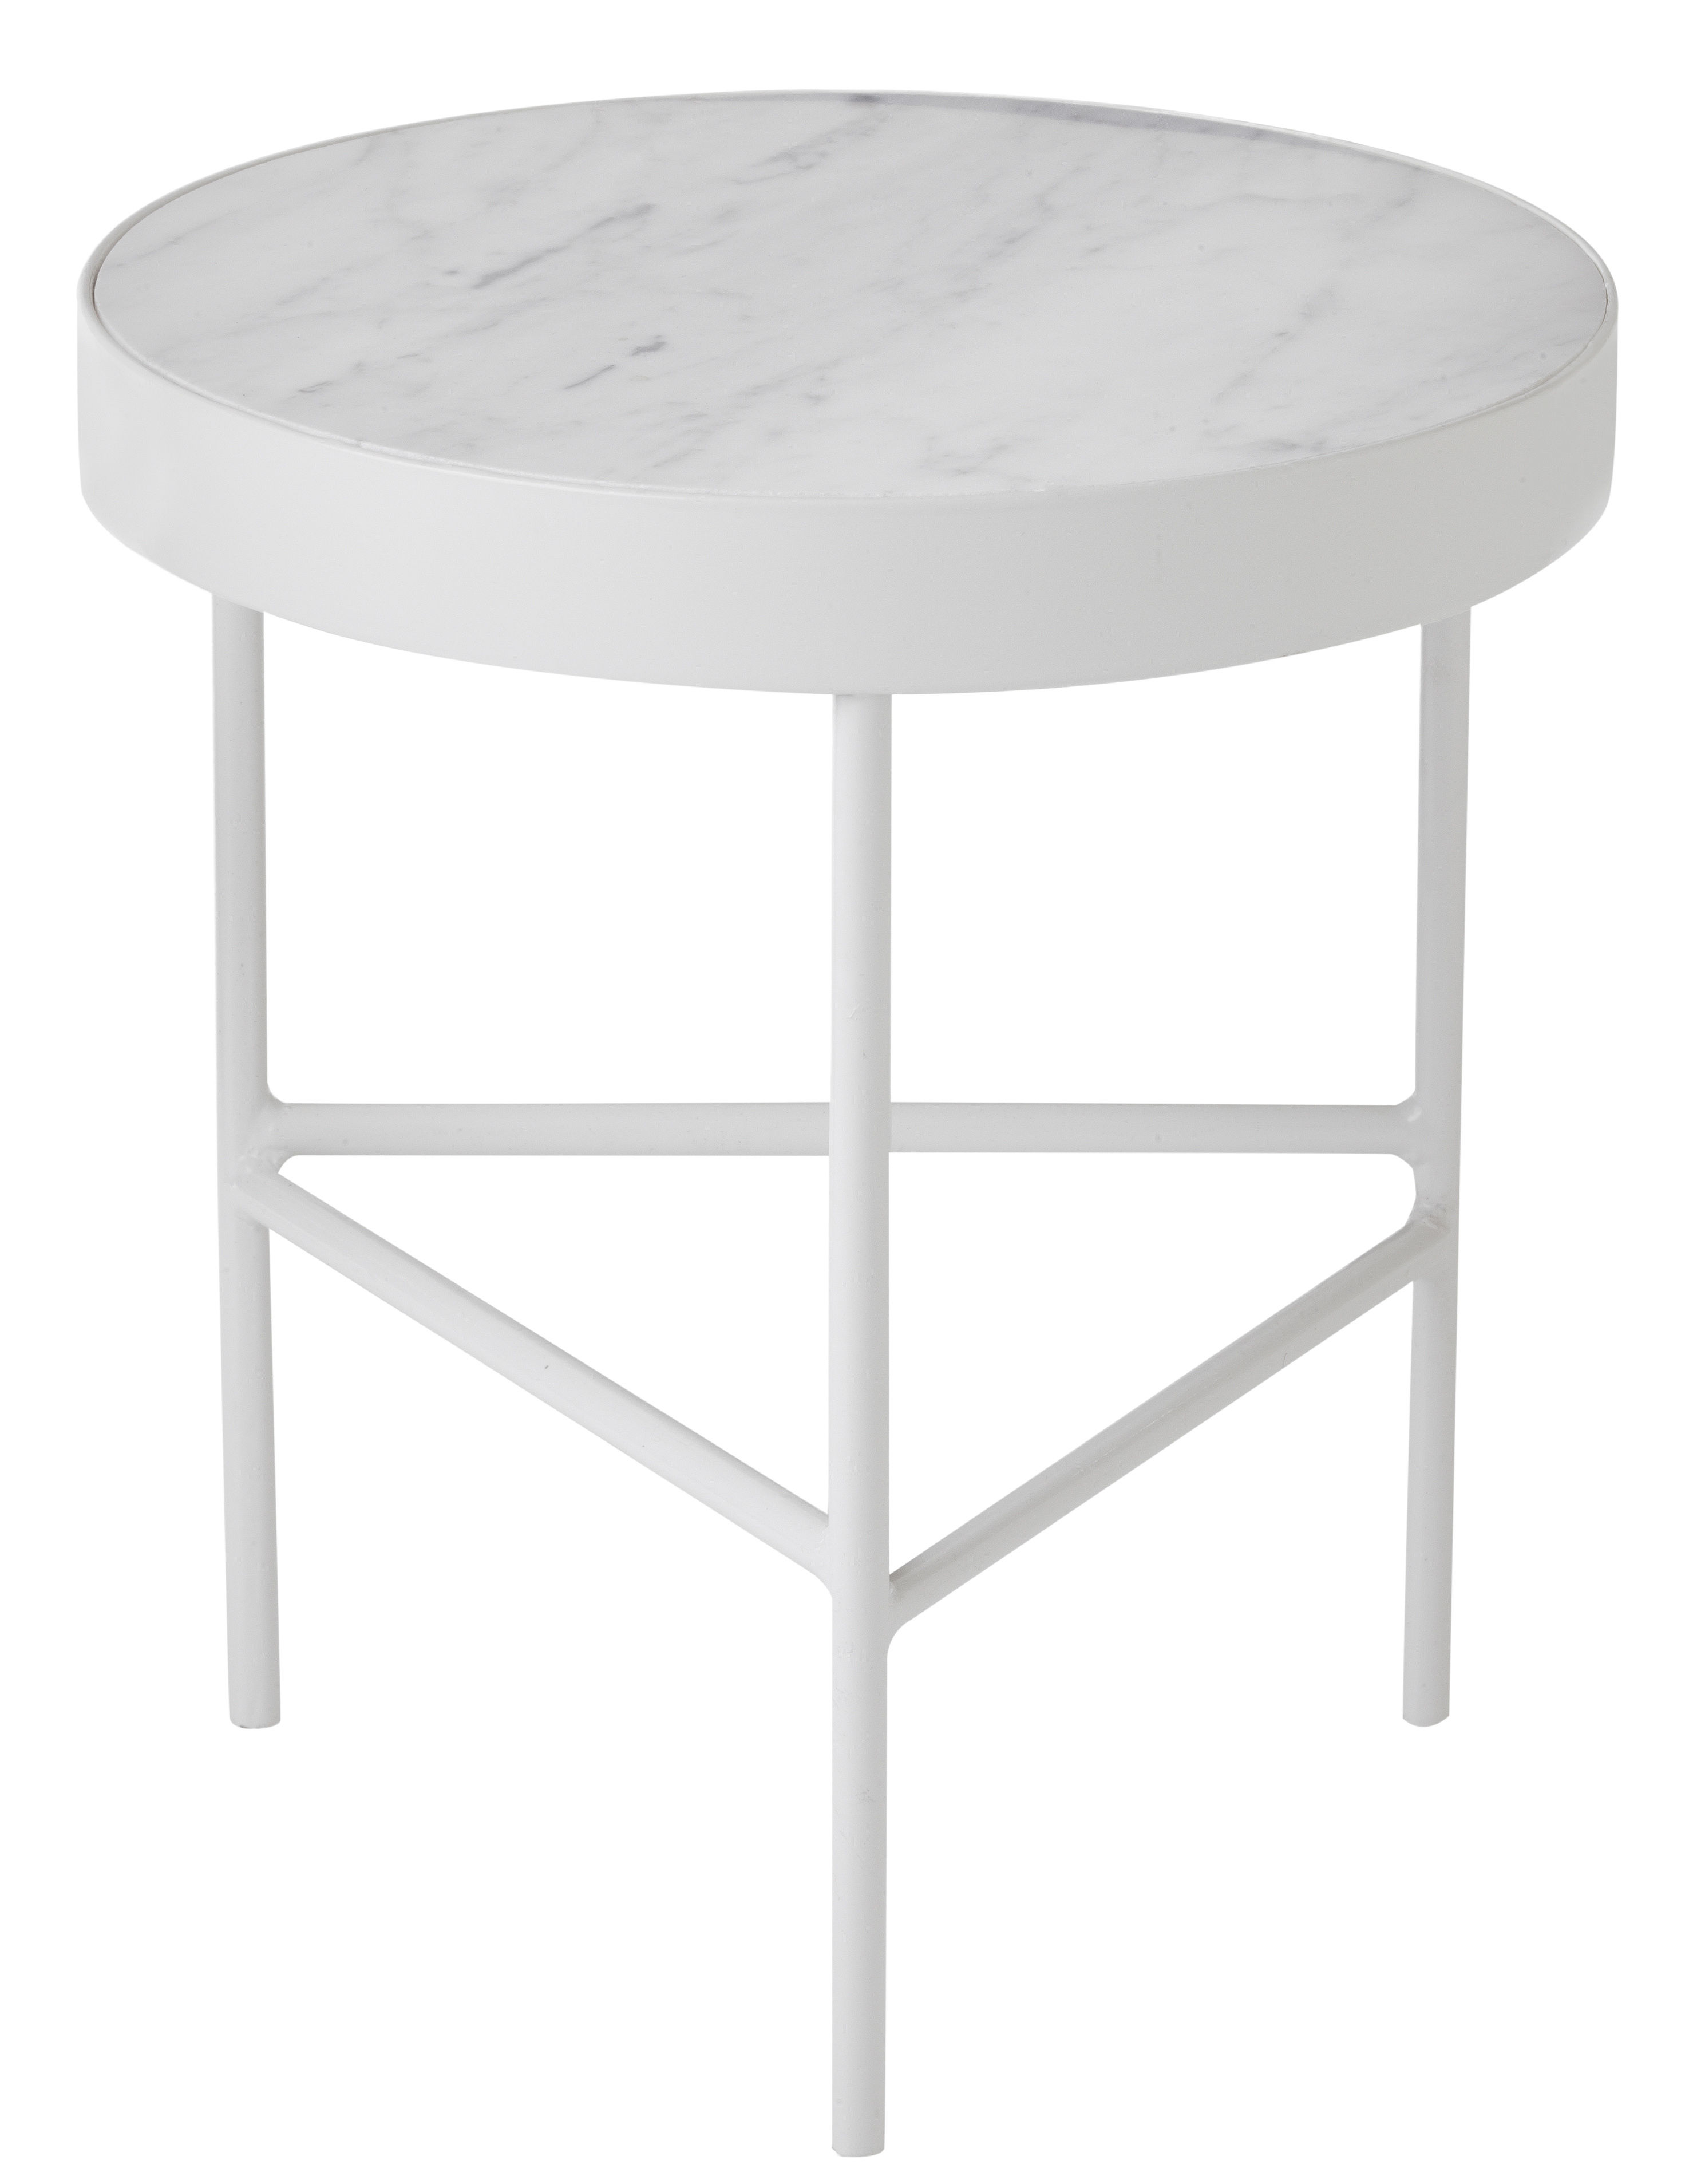 Marble medium end table 40 x h 45 cm white by ferm living for Coffee table 70 x 40